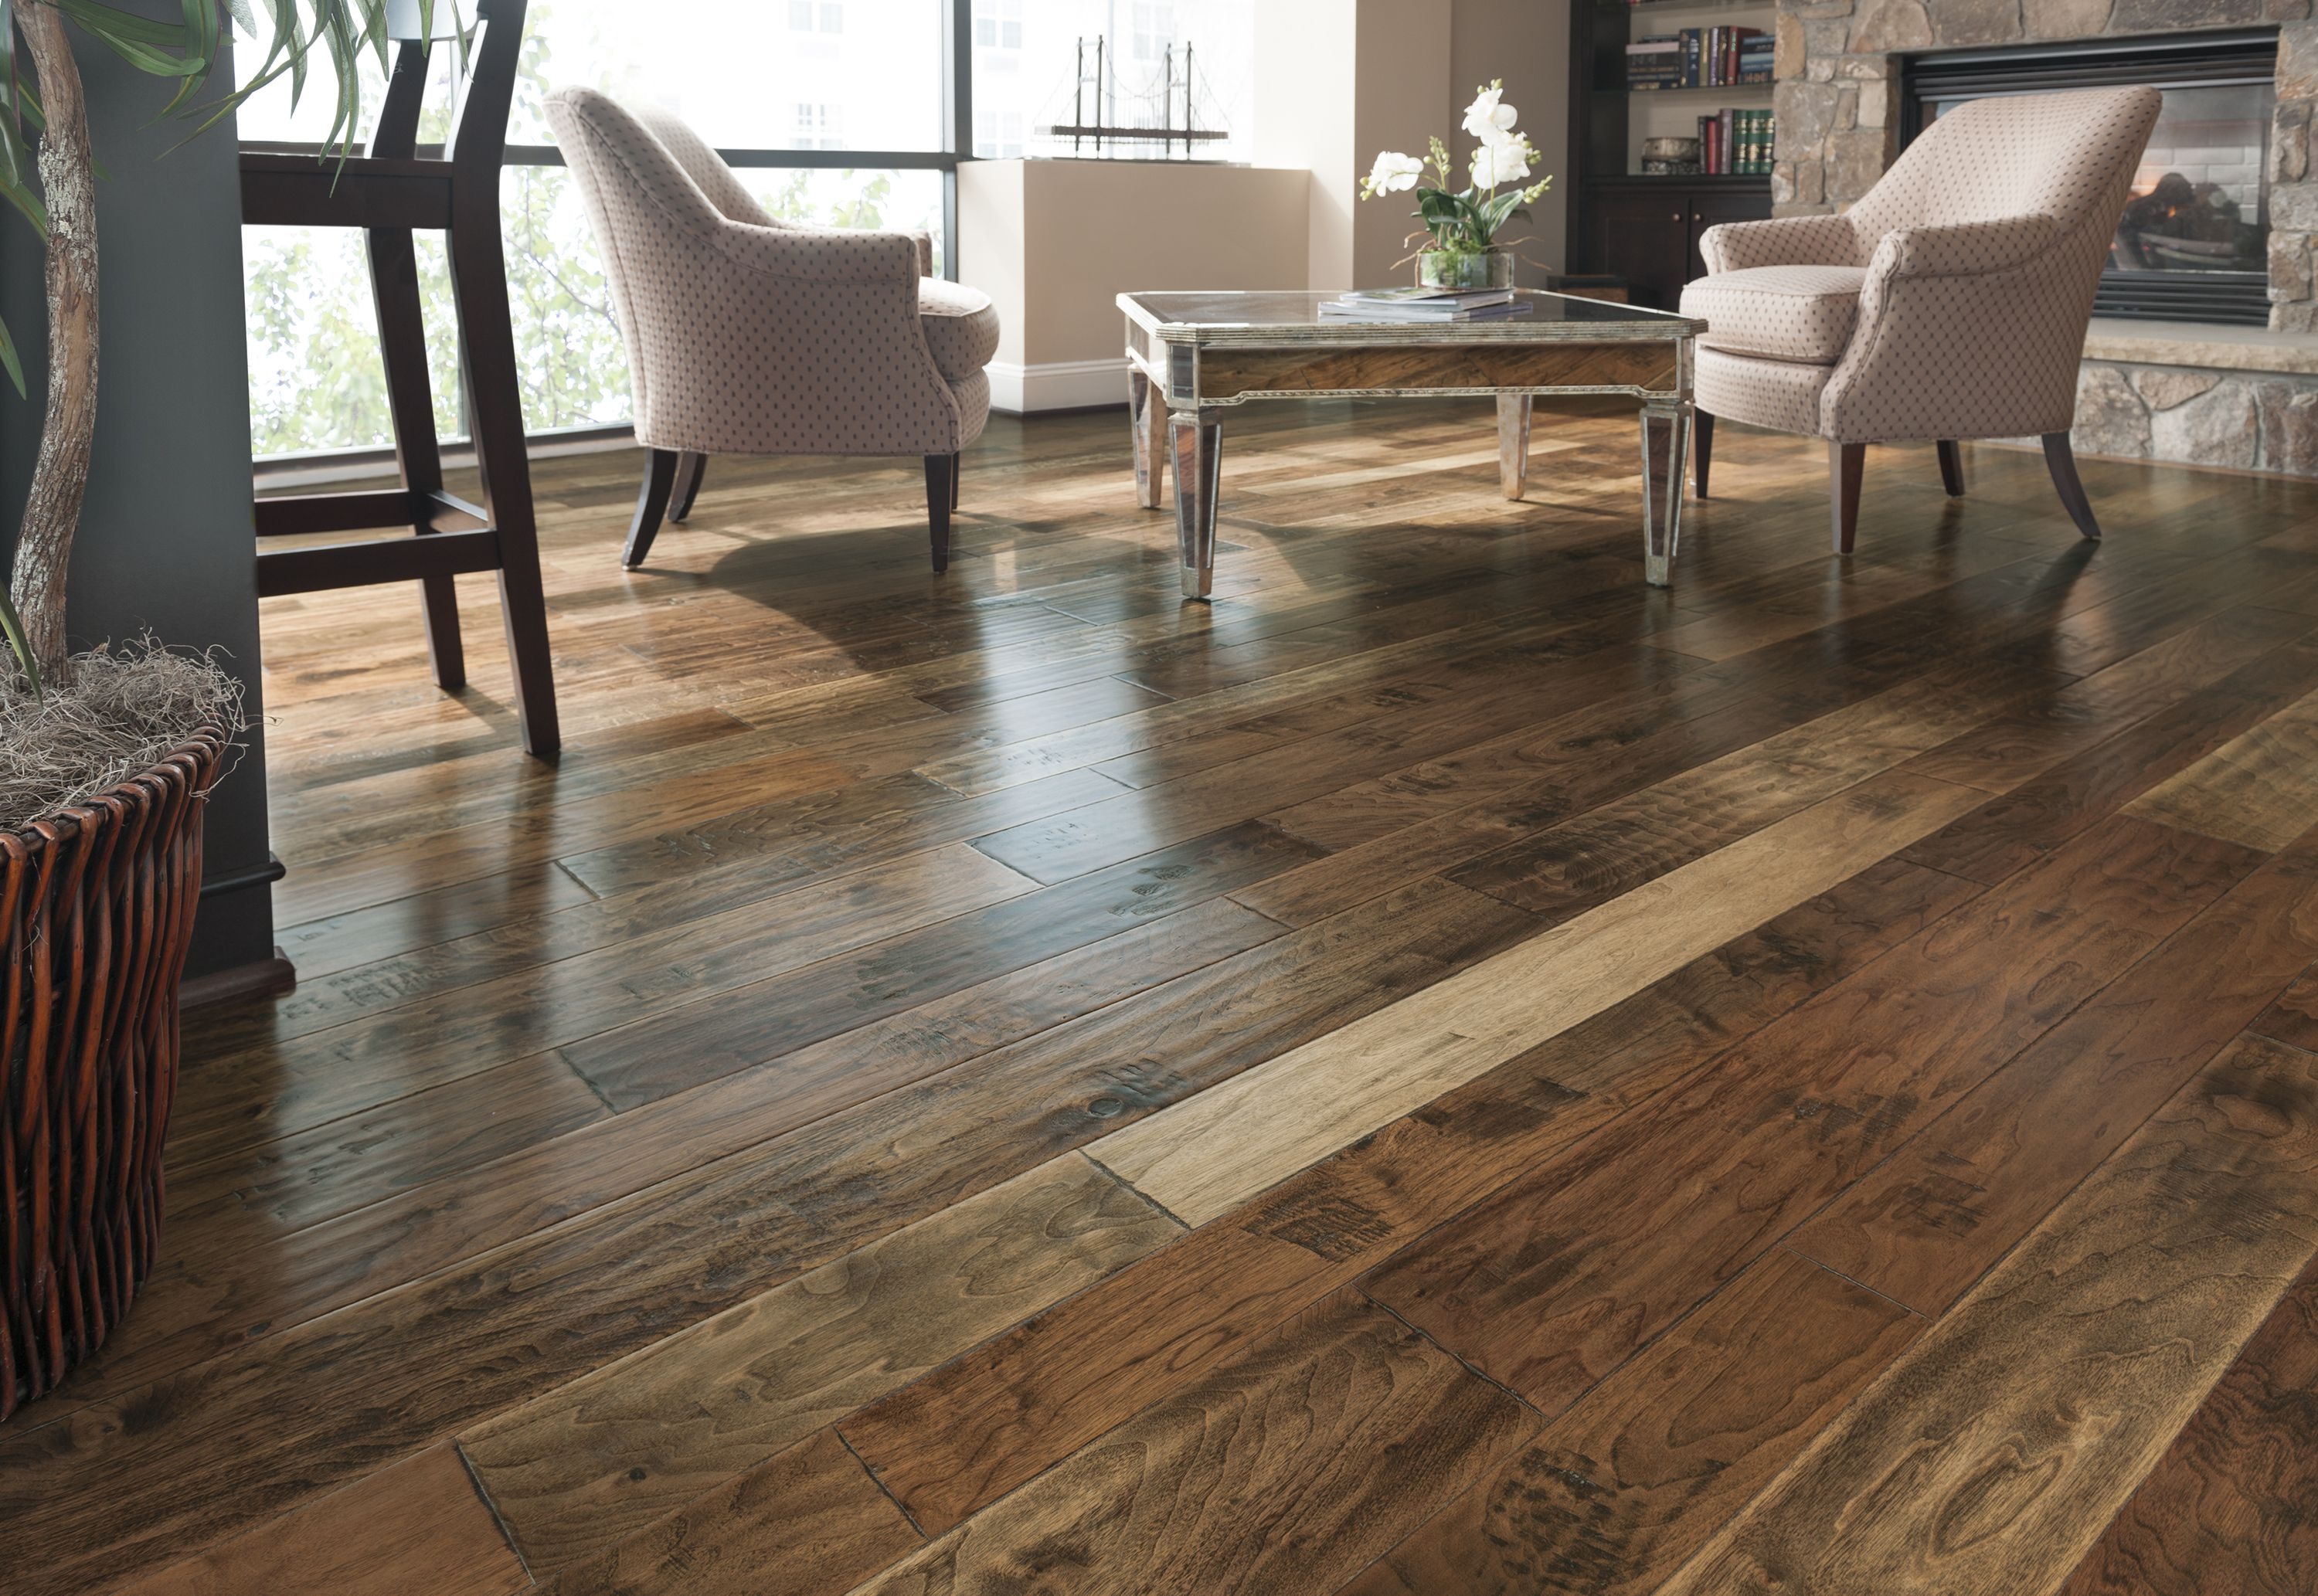 wood hickory house flooring armstrong forge iron floors branding hardwood